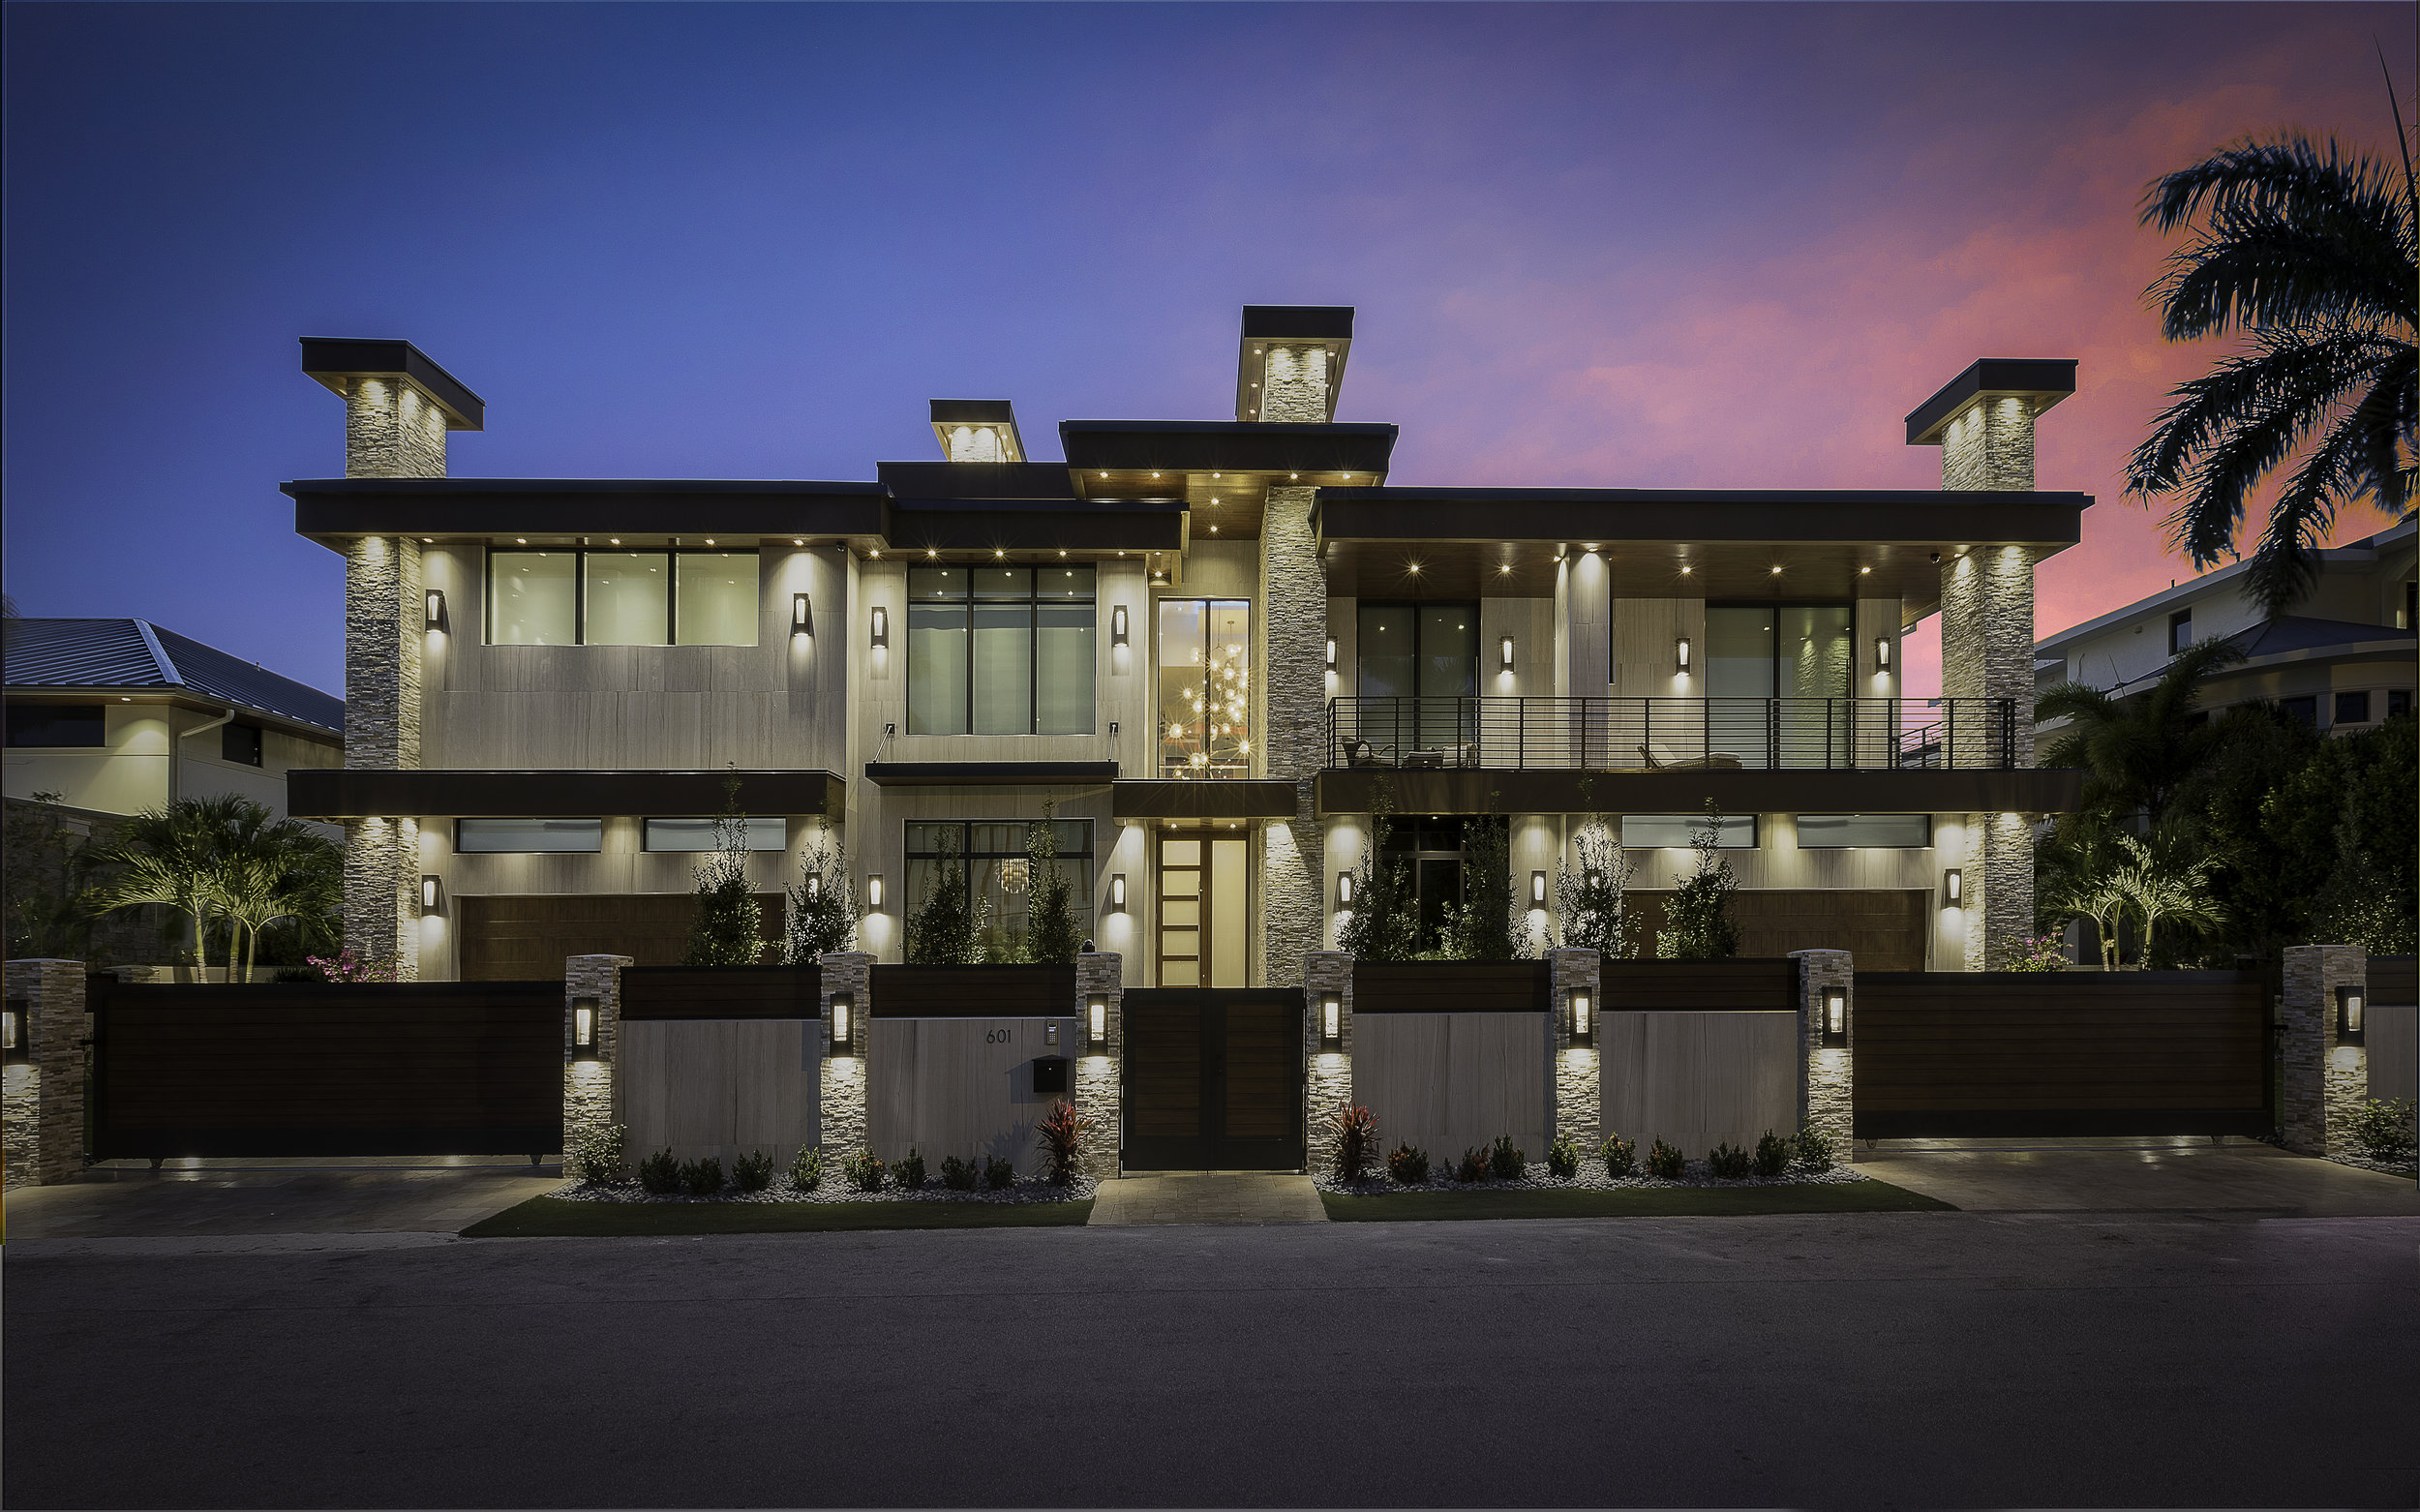 601 Royal Plaza Drive - Completed Project, brand new modern construction, 12,000 sq. ft, oversized lot